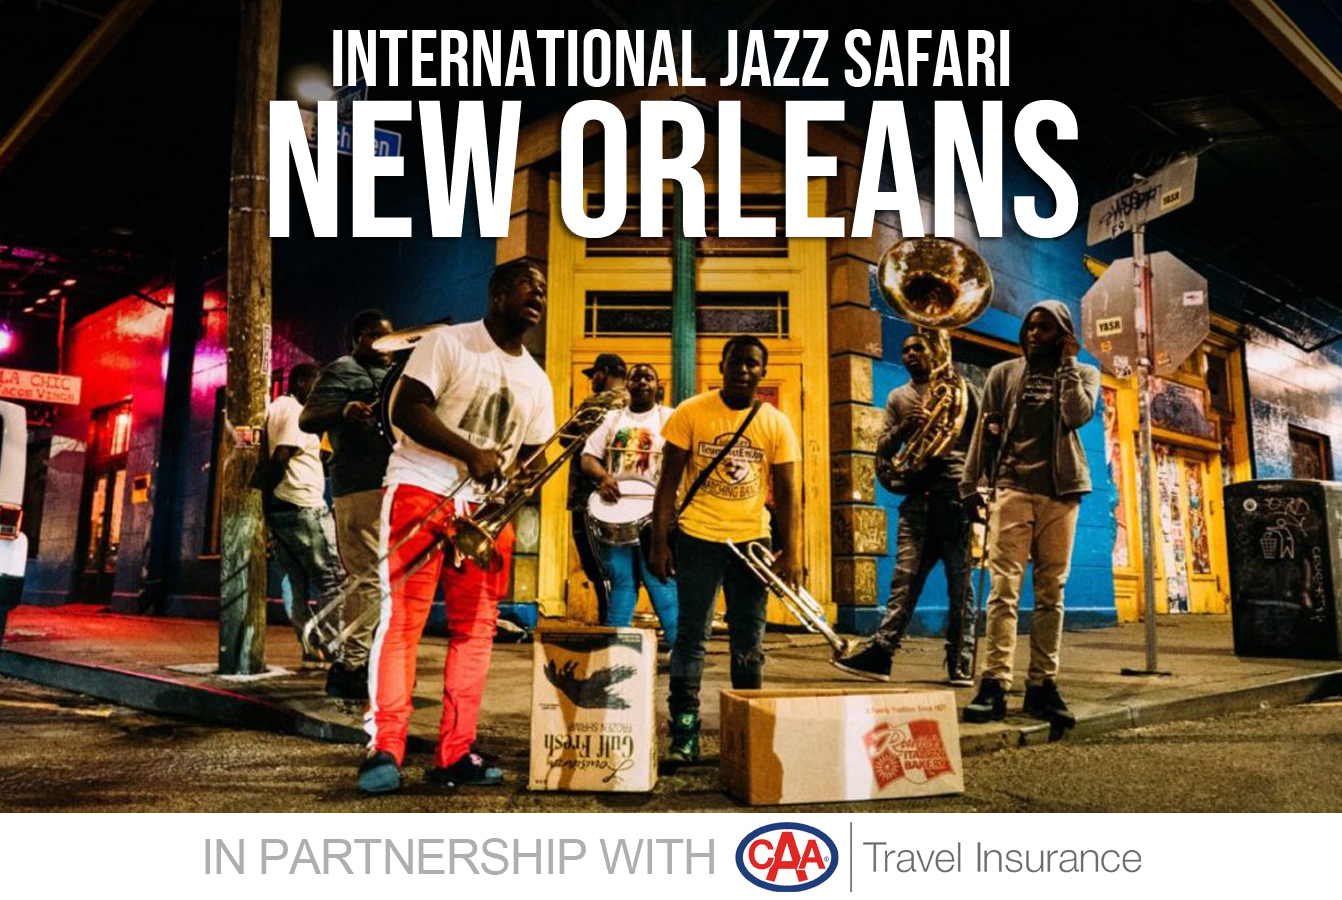 New Orleans Events May 2020.Jazz Fm91 Caa International Jazz Safari To New Orleans